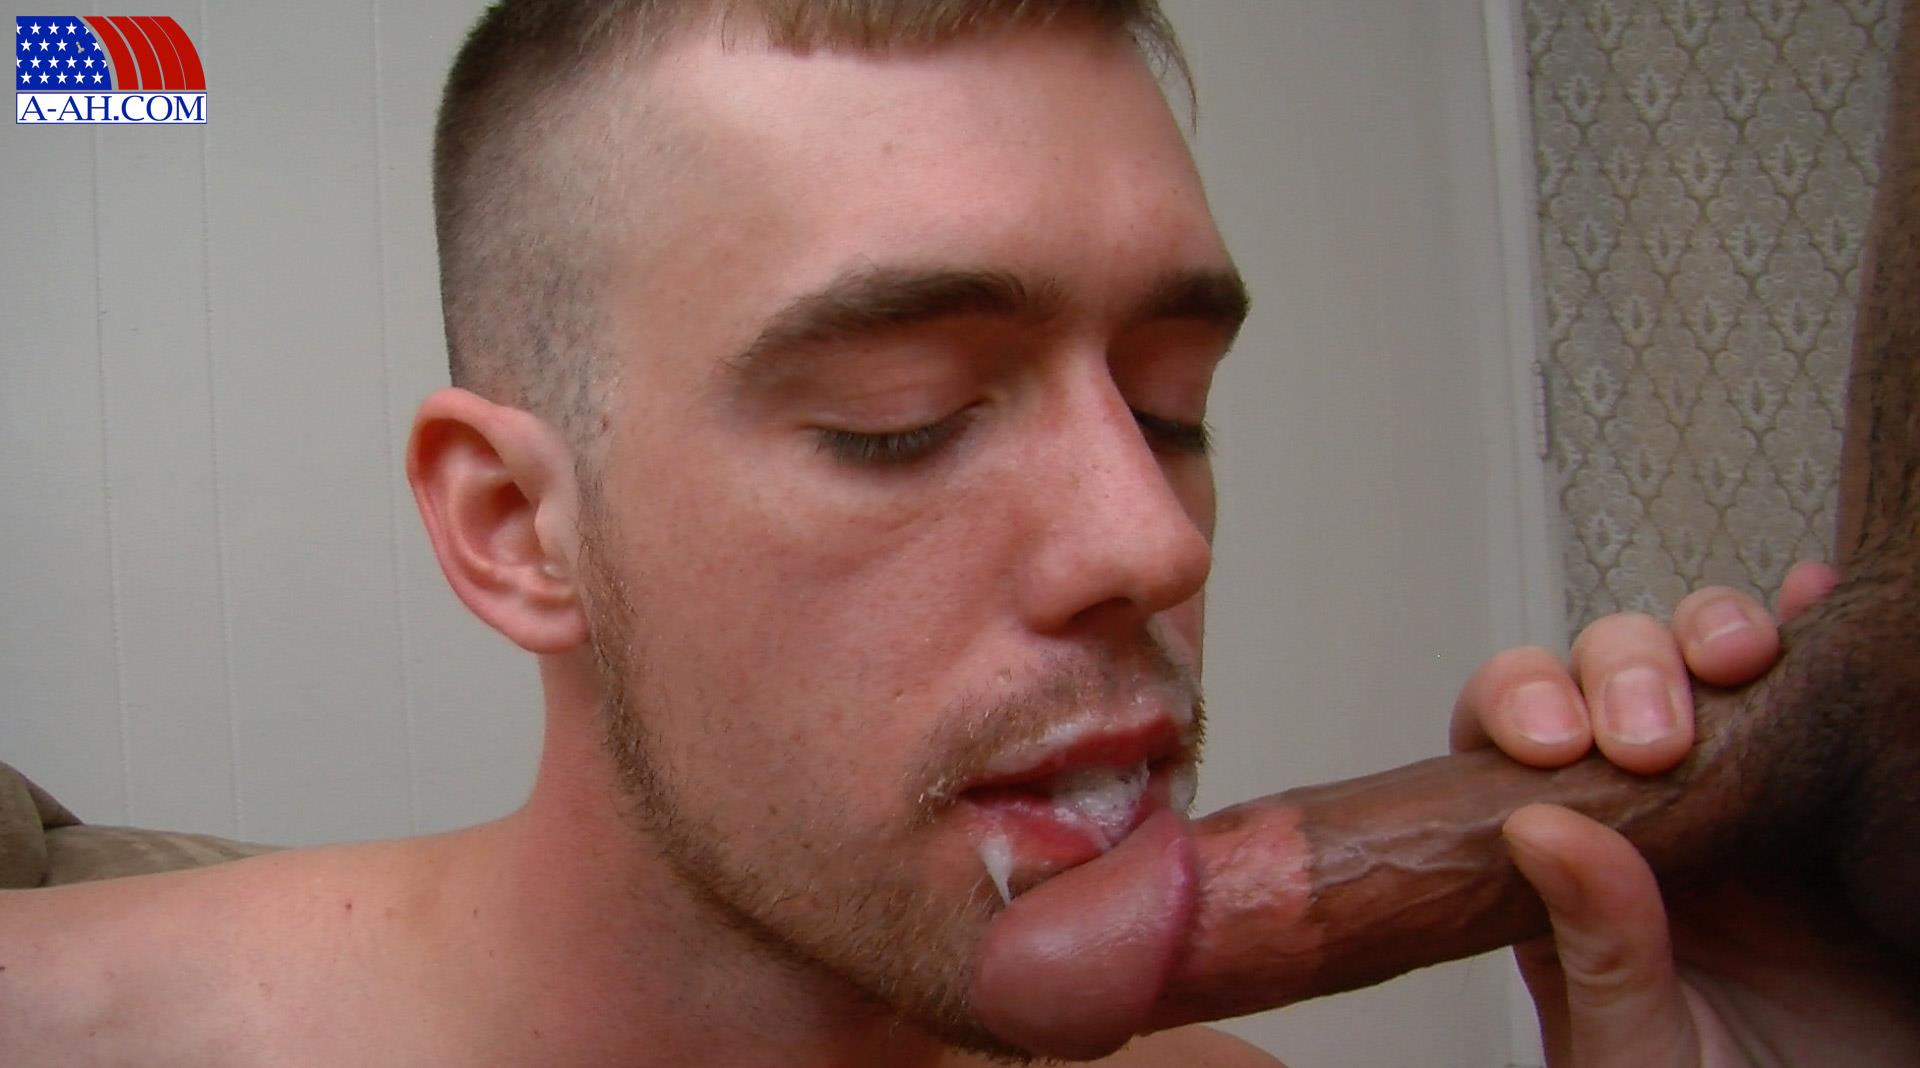 All-American-Heroes-JD-and-Alex-Army-Guys-Fucking-Bareback-Naked-Soldiers-Amateur-Gay-Porn-15 Army Staff Sergeant Getting Barebacked By Another Solider